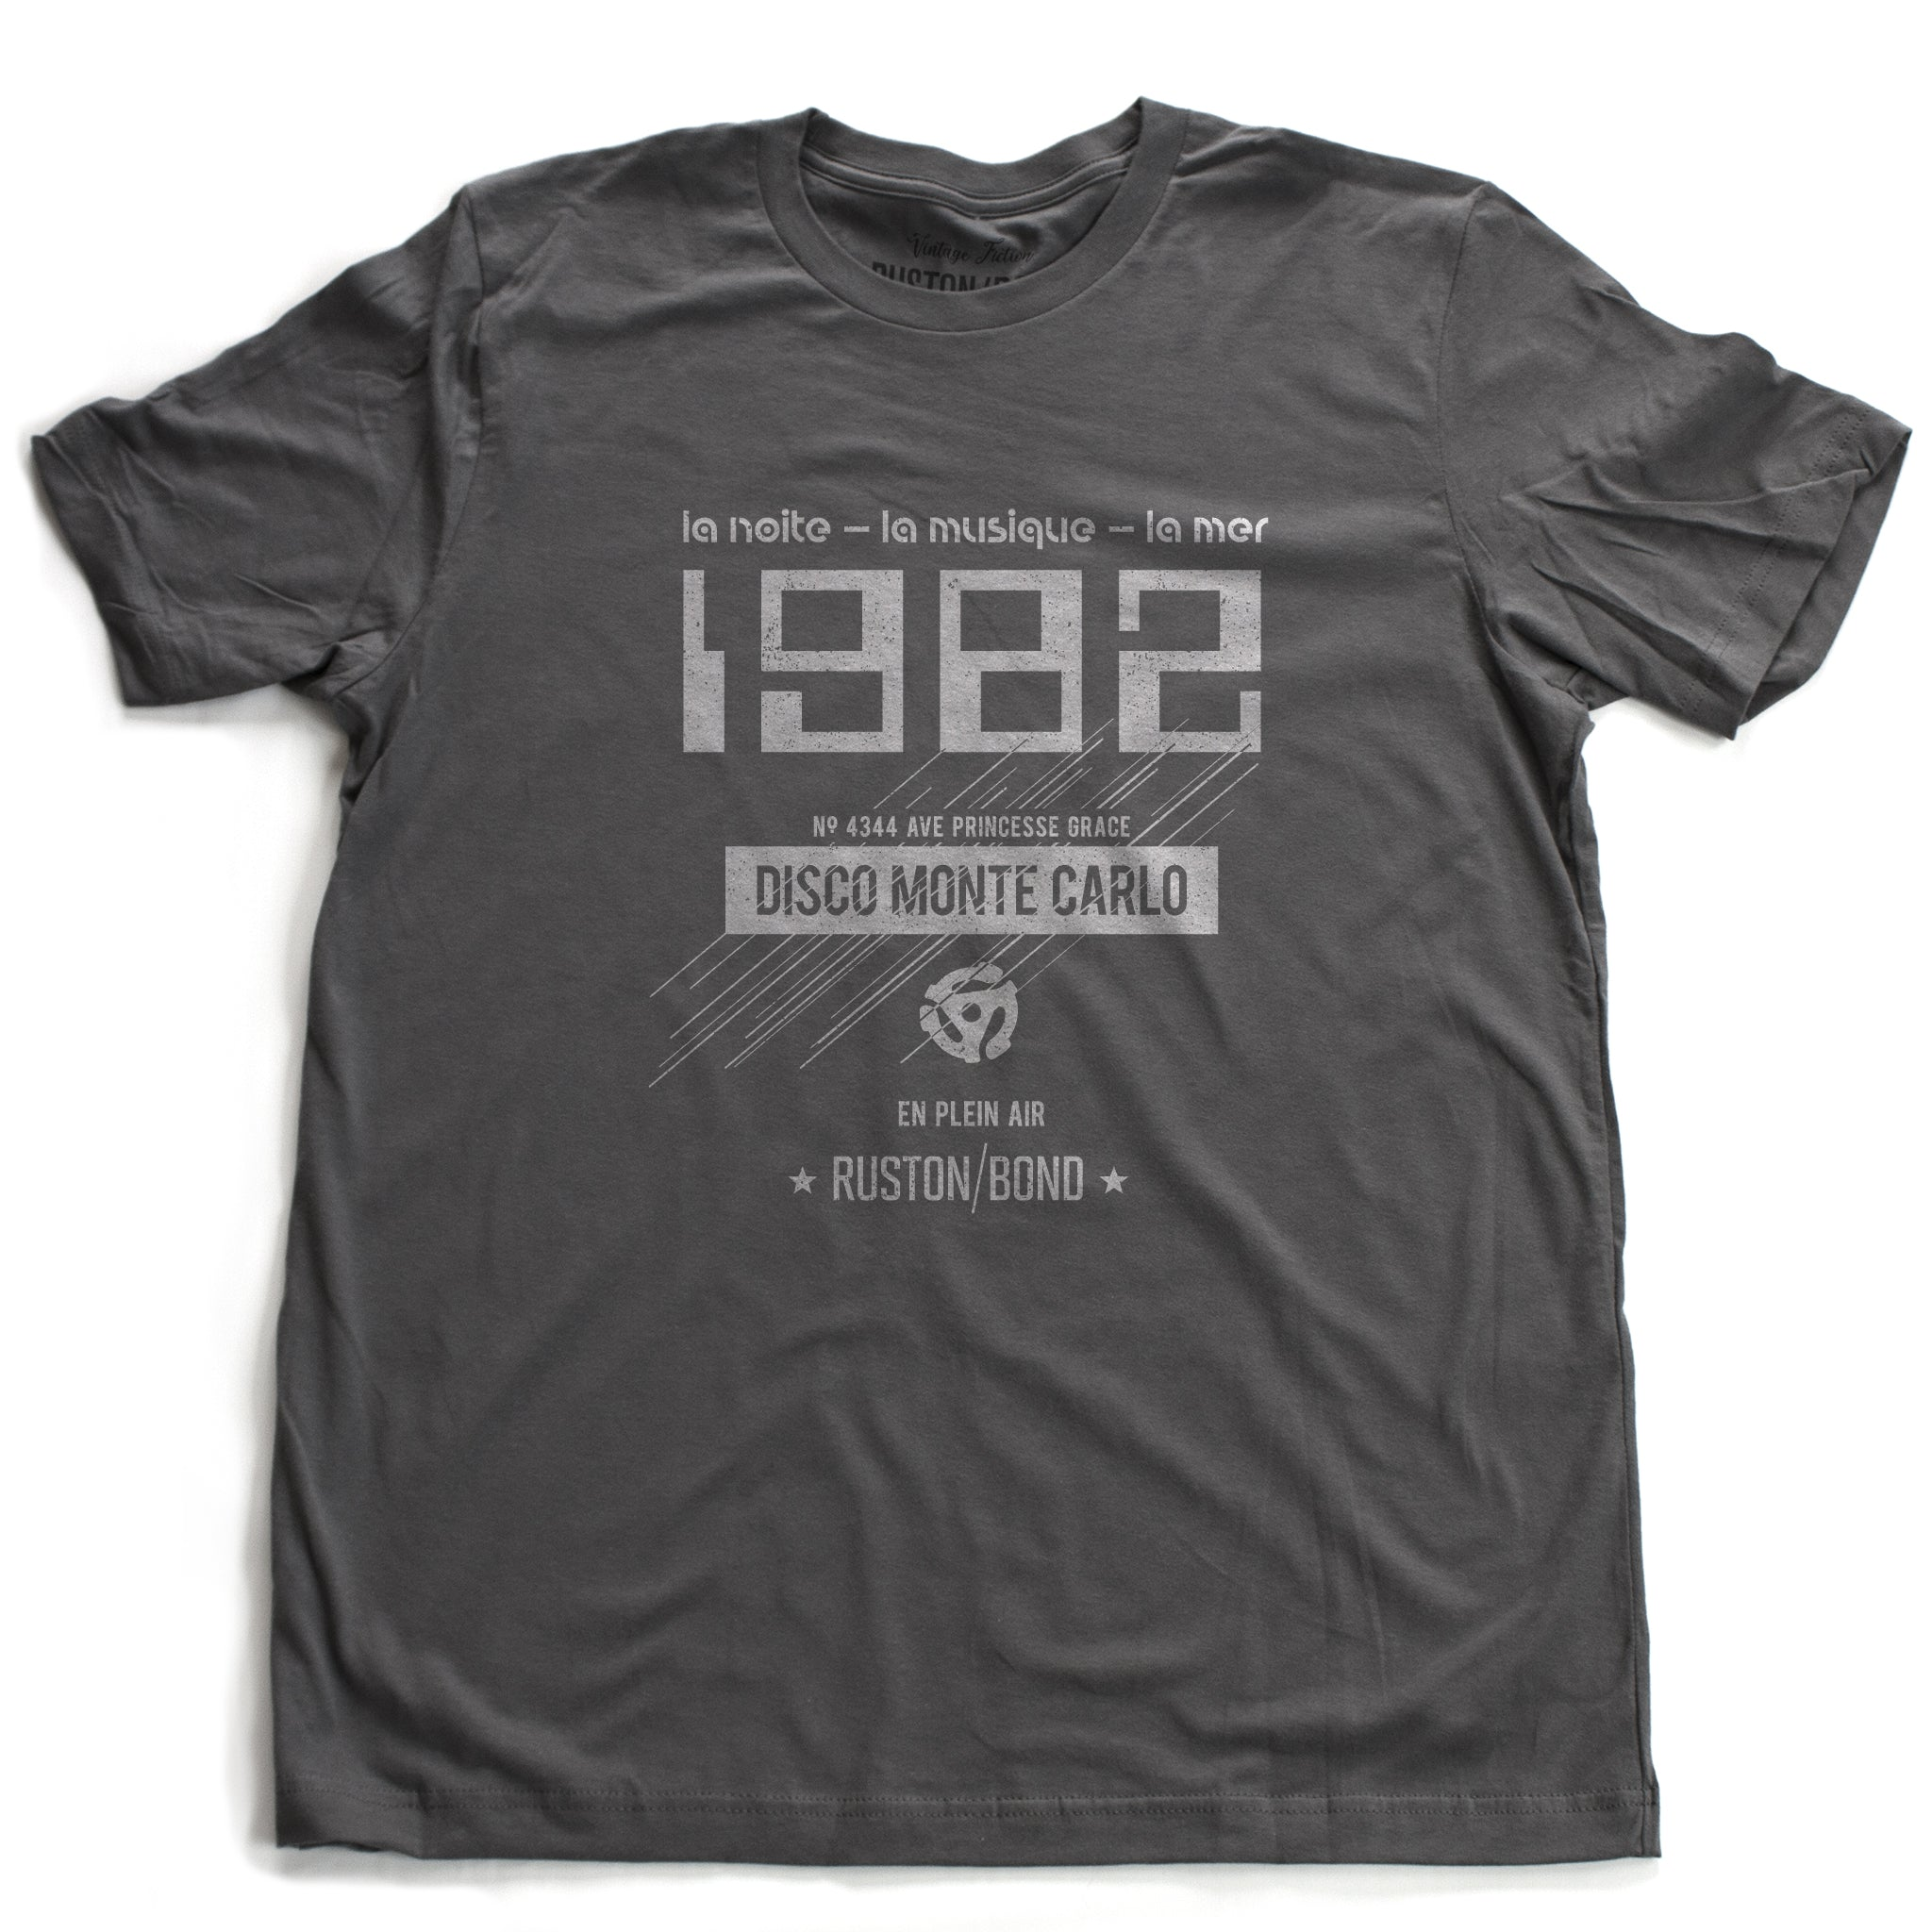 "A vintage-inspired t-shirt in asphalt gray, featuring retro digital font reading ""1982"" with French taglines and a 45 record adapter graphic, promoting a fictional Monte Carlo discotheque from the 1970s and 80s. By fashion brand Ruston/Bond, from wolfsaint.net"